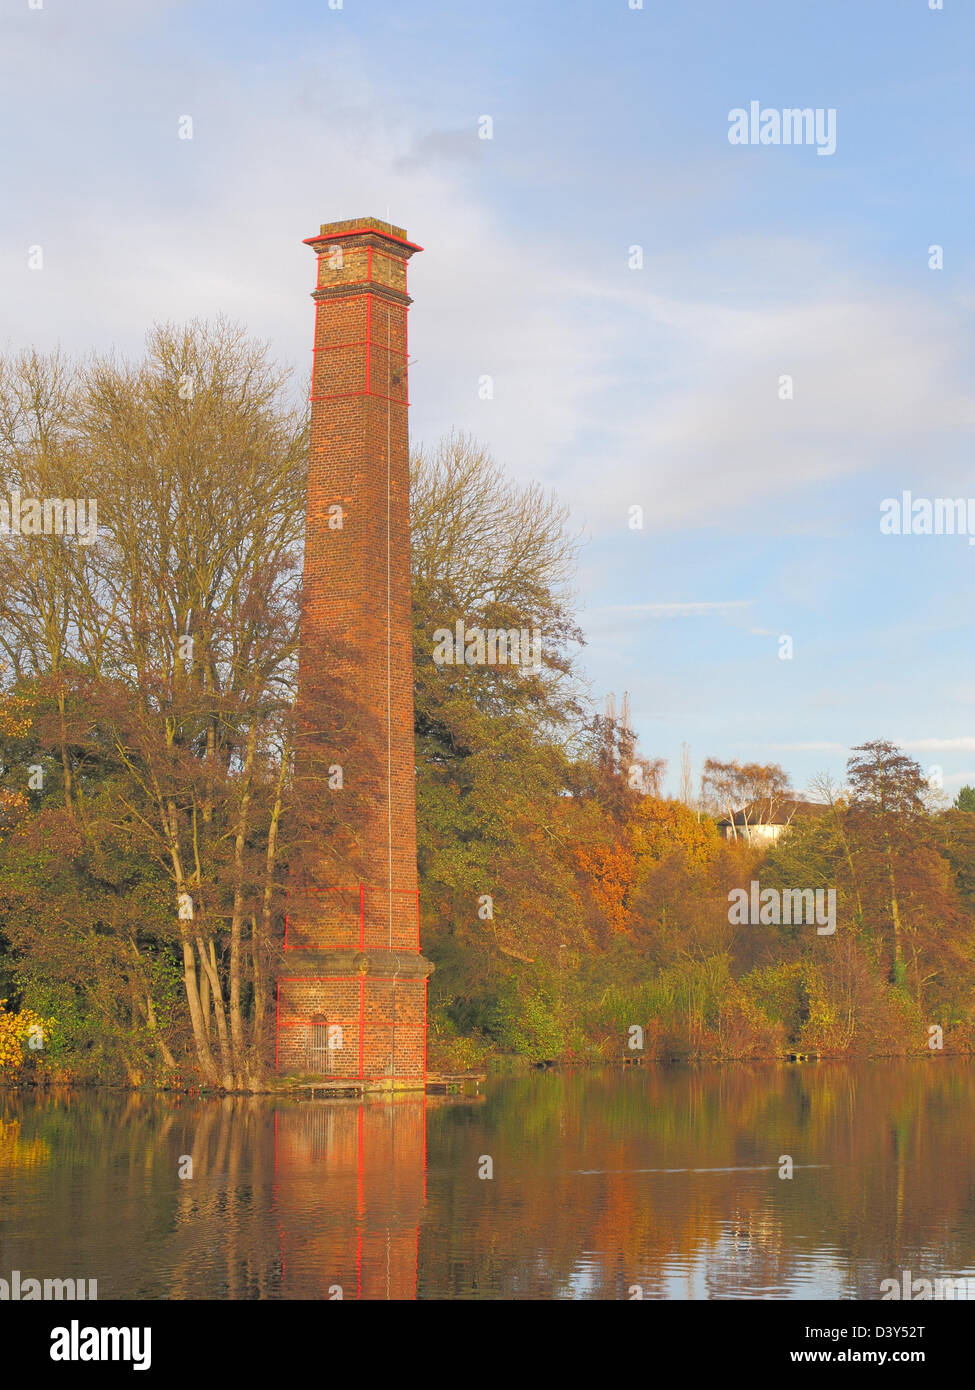 Stack Pool, Kidderminster, Wyre Forest, Worcestershire, England, UK in Autumn - Stock Image